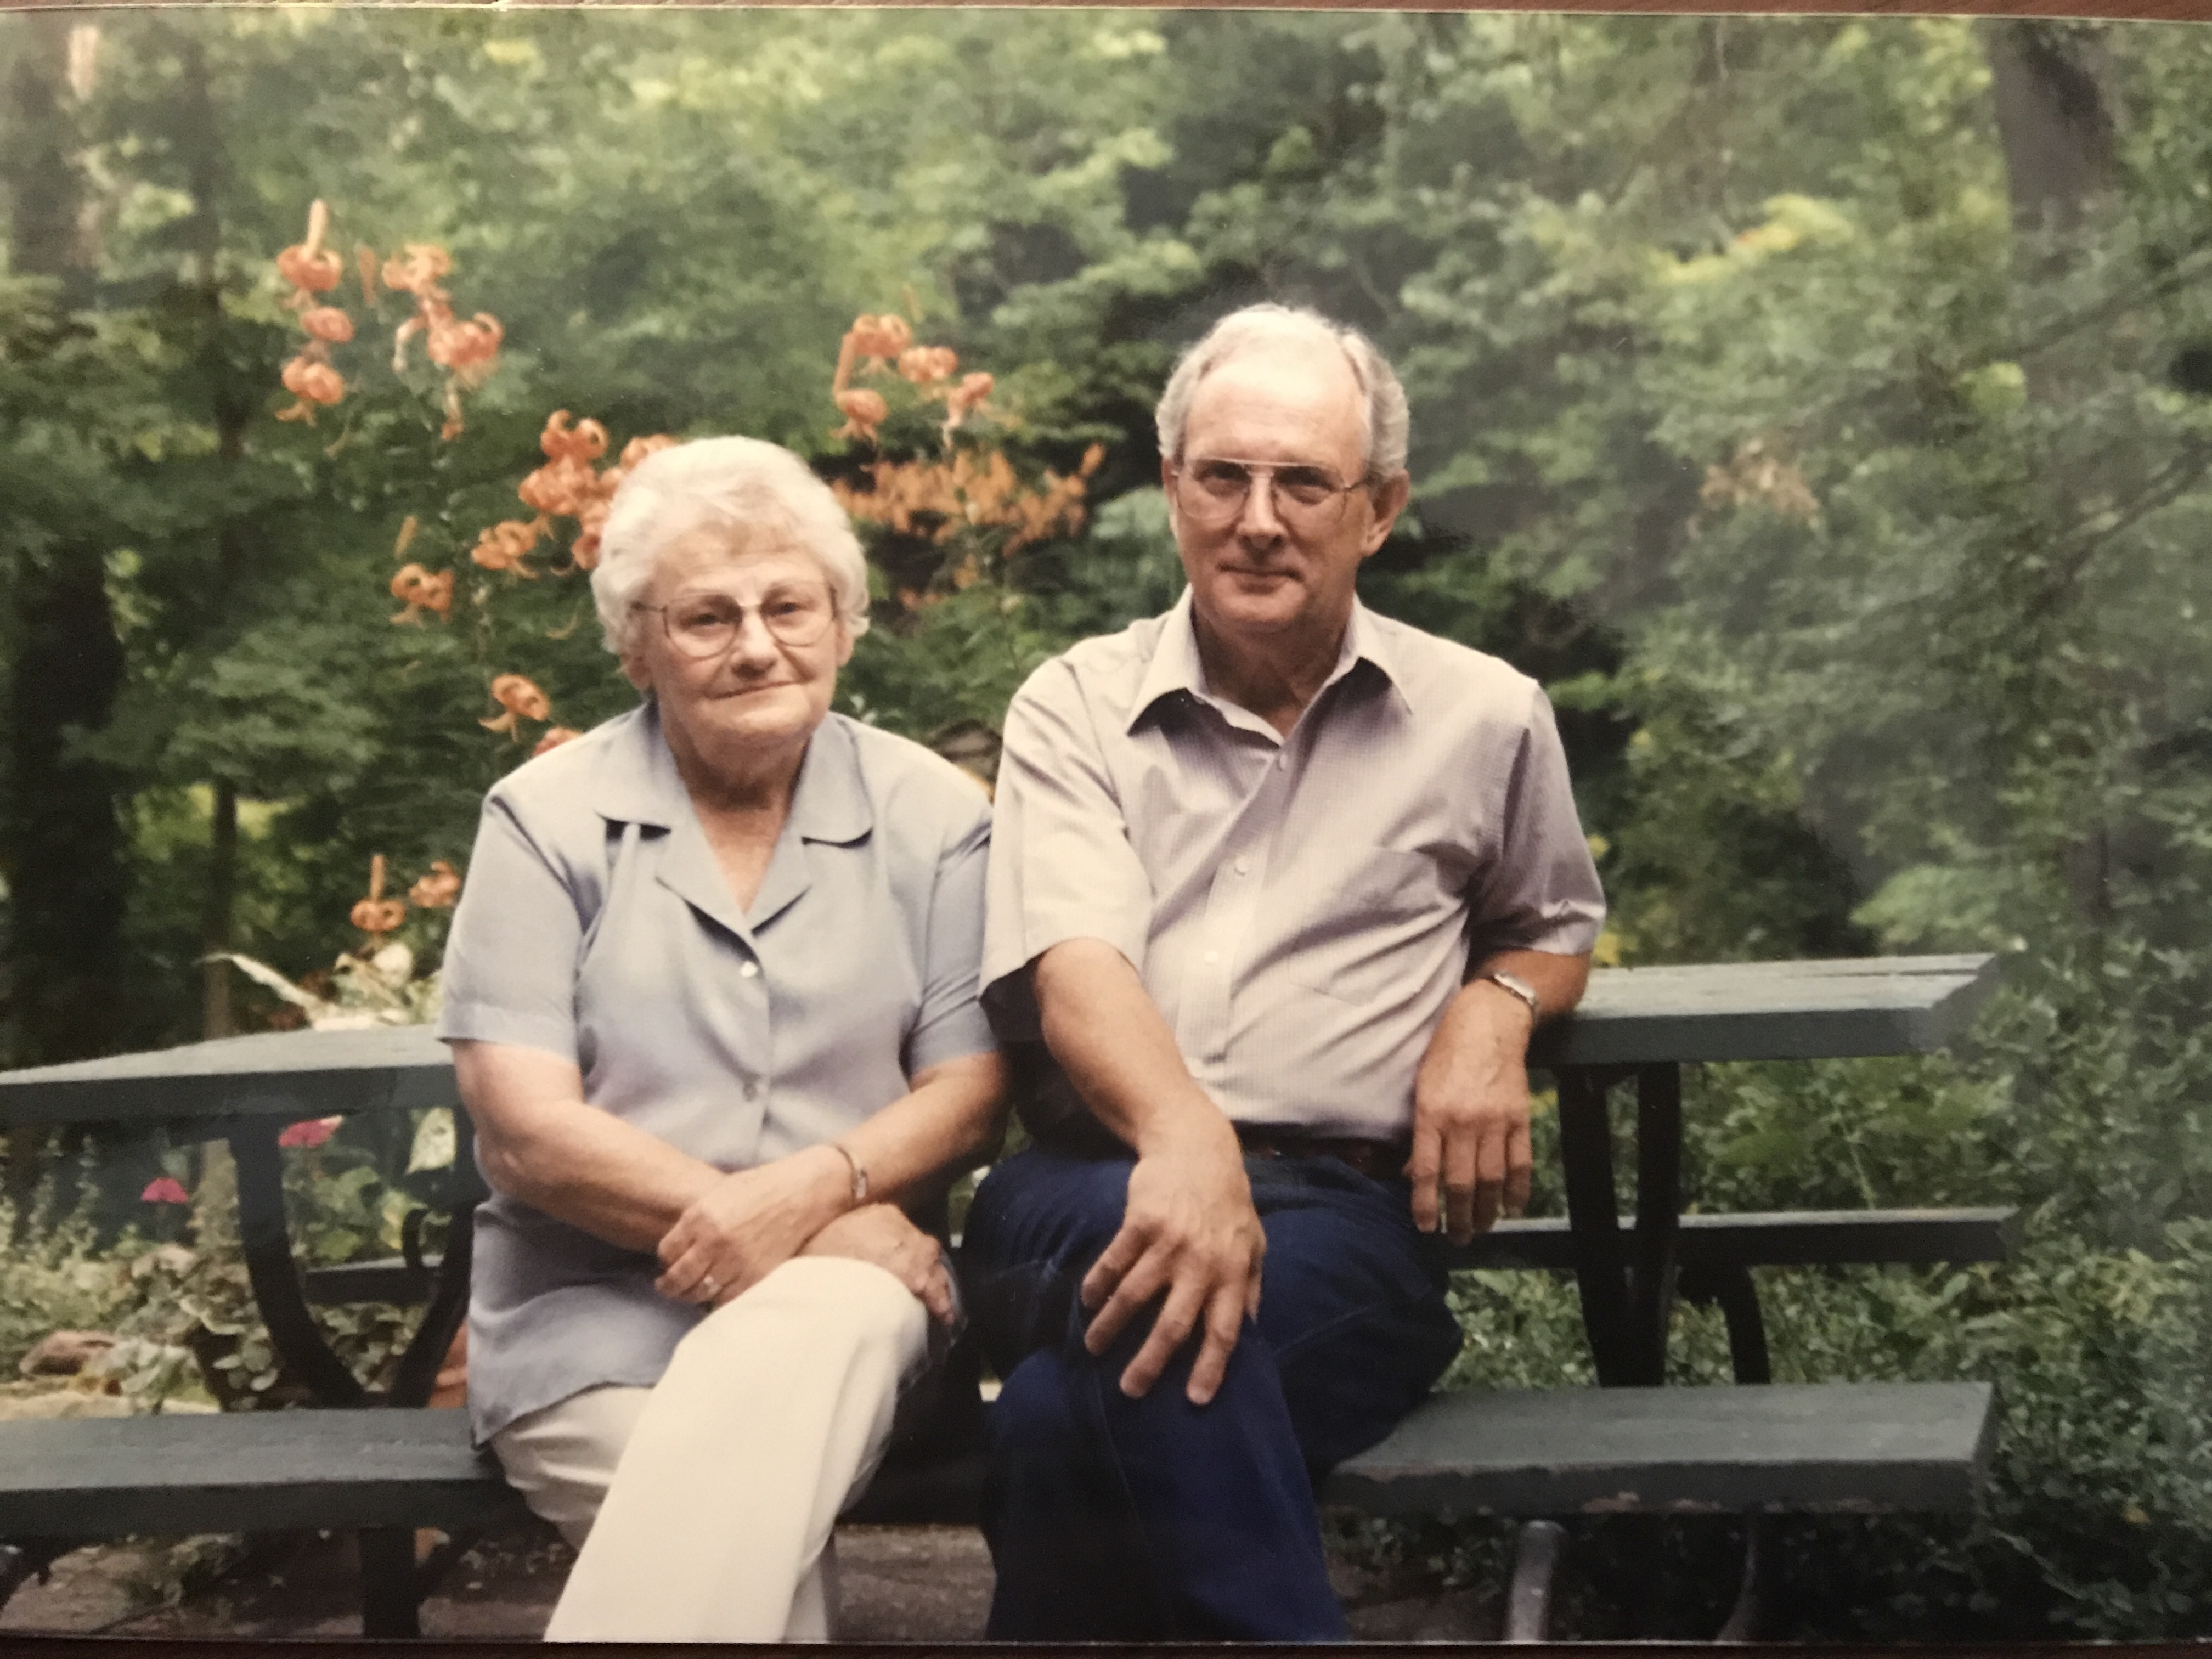 grandma and grandpa lentz